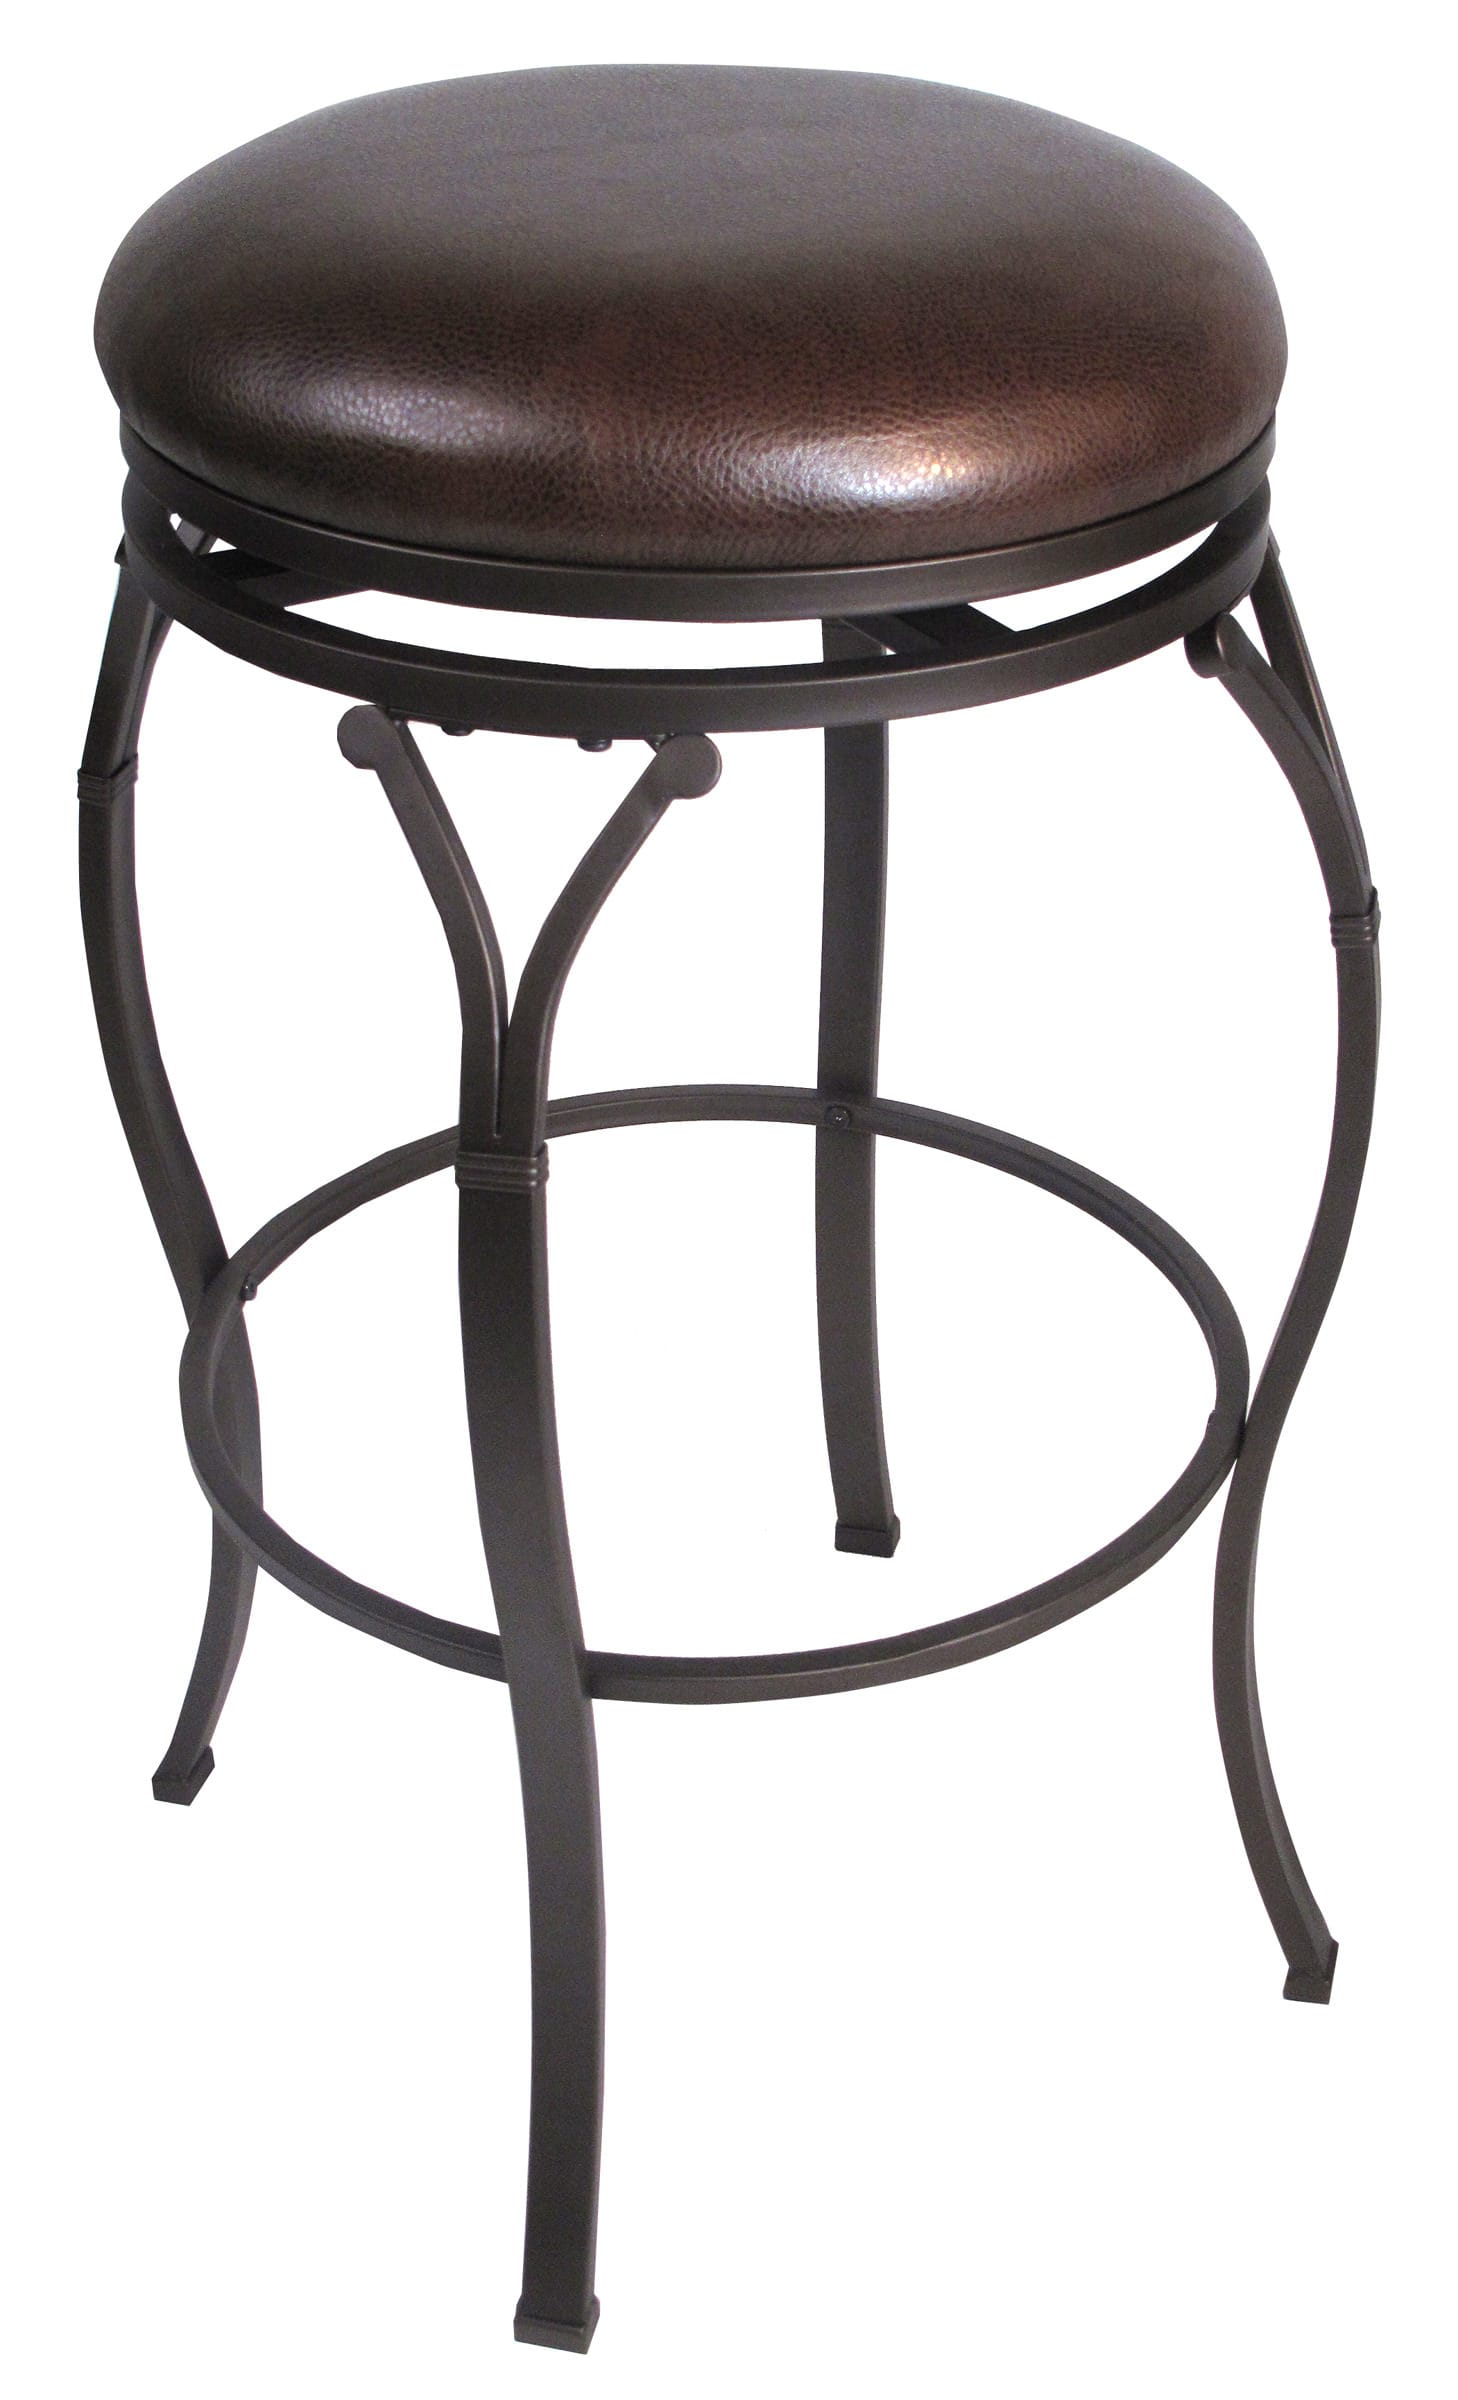 Magnificent Lakeview Backless Swivel Counter Stool 4264 828 By Hillsdale Creativecarmelina Interior Chair Design Creativecarmelinacom